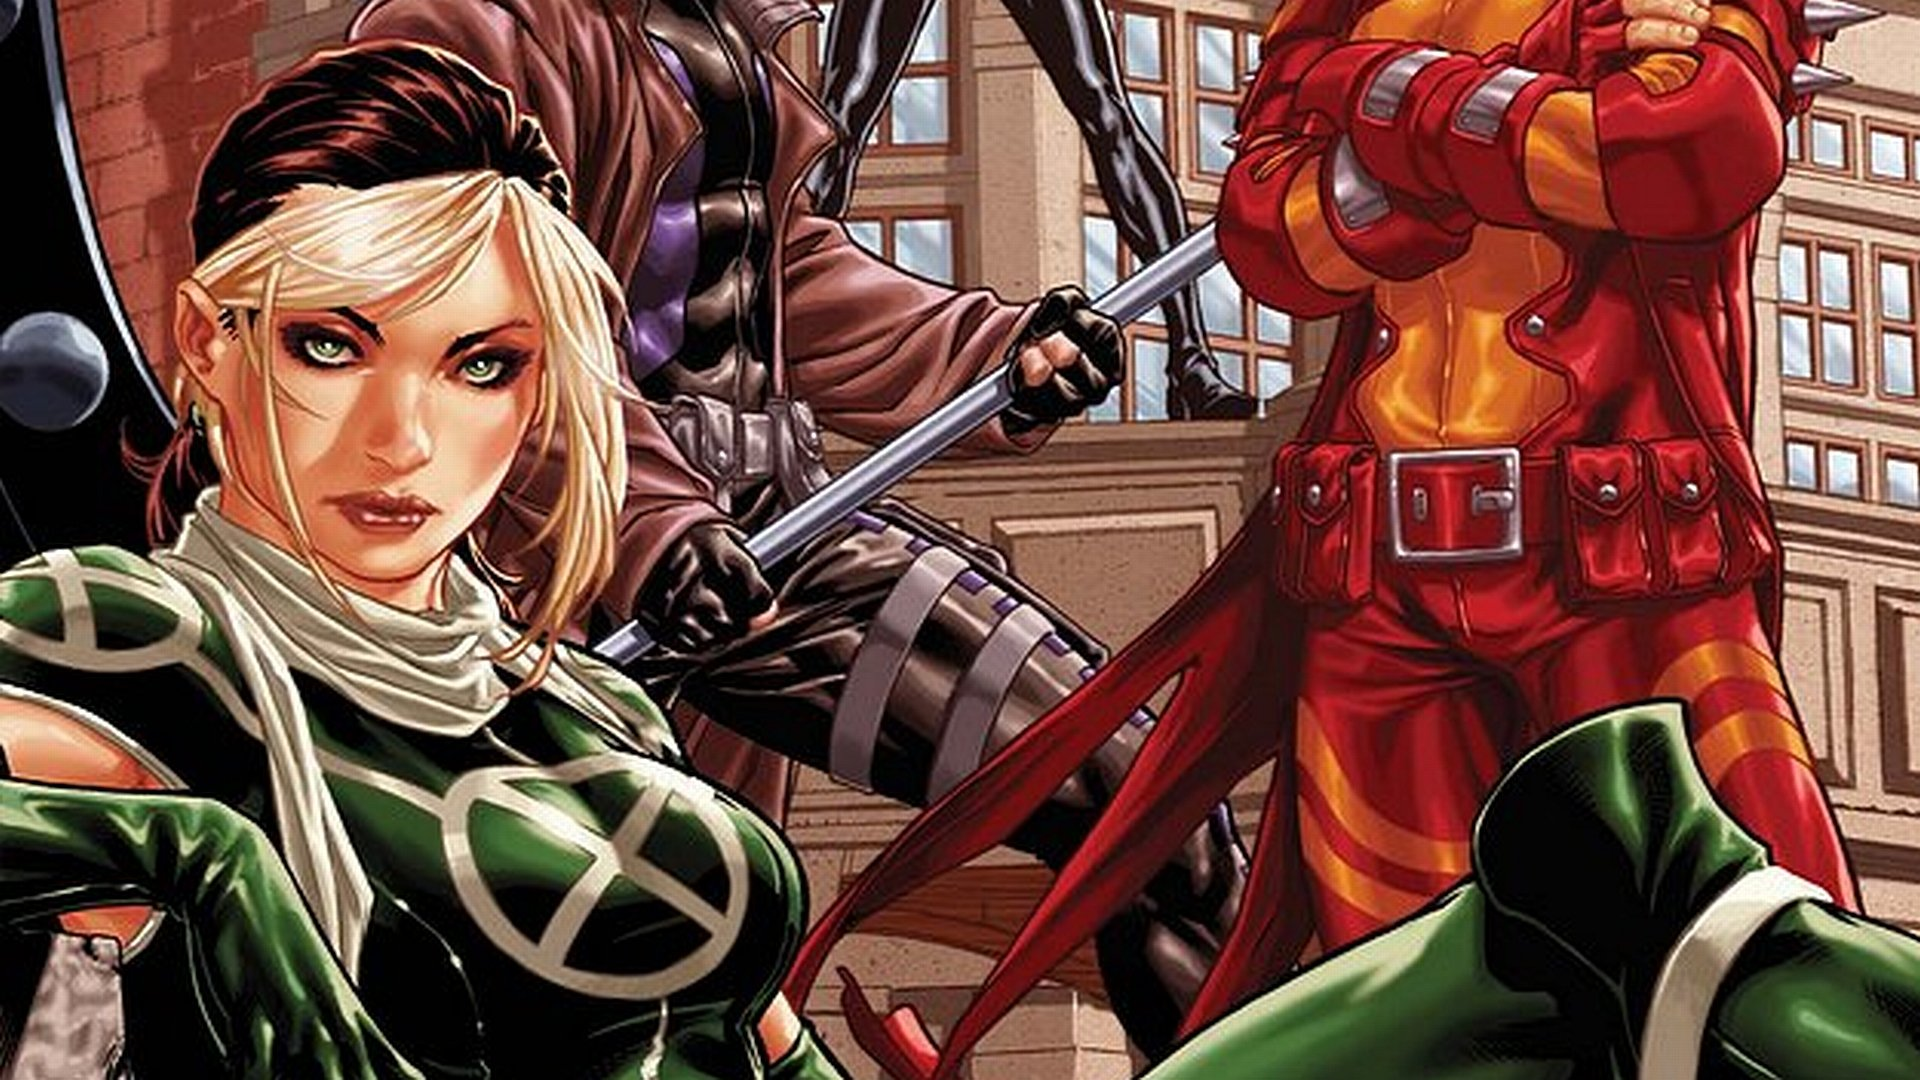 Rogue wallpapers   X Men Wallpaper 37073791 1920x1080